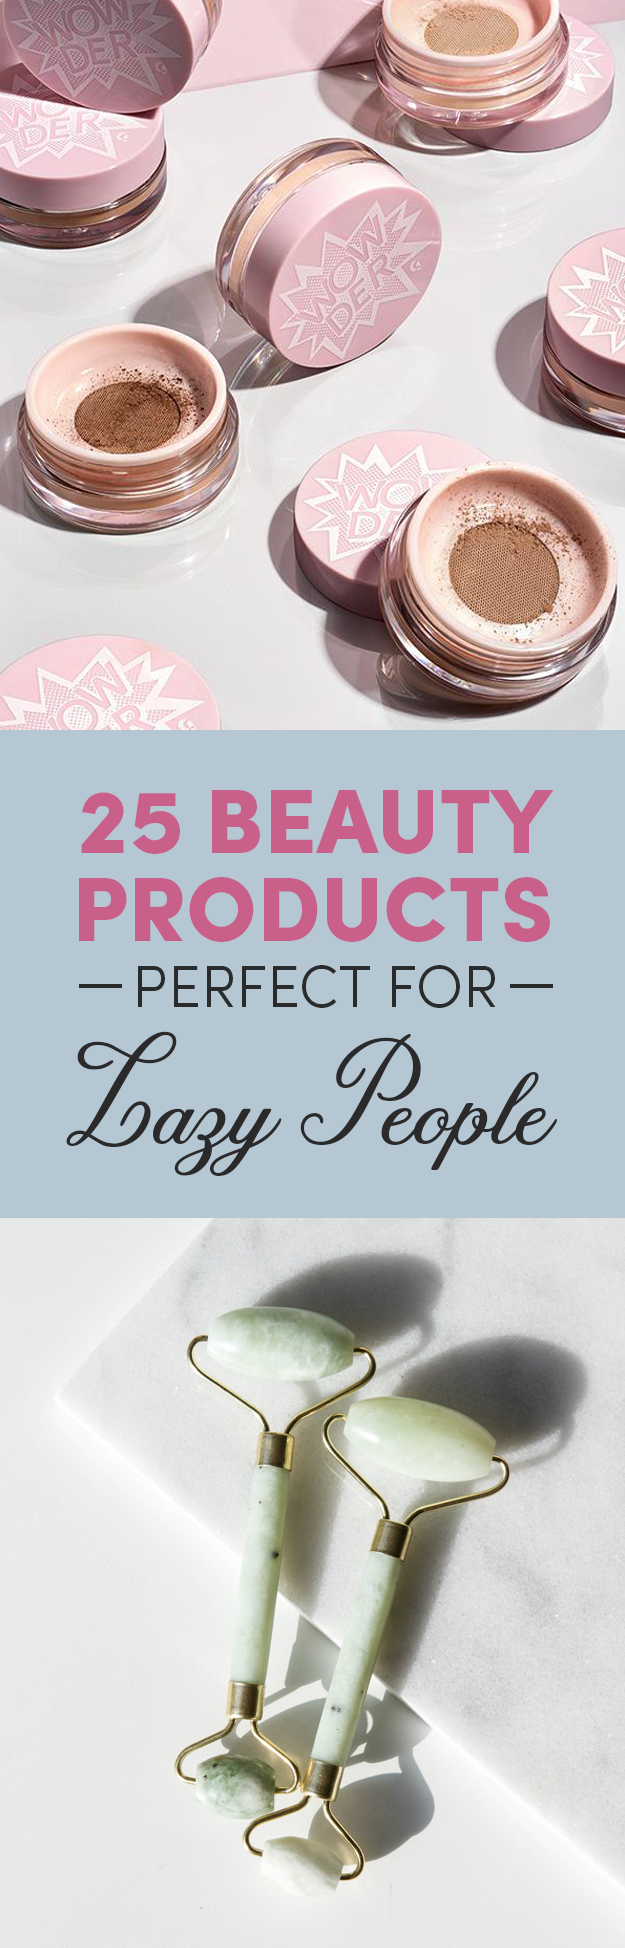 25 Low-Maintenance Beauty Tips And Products Made For Lazy People